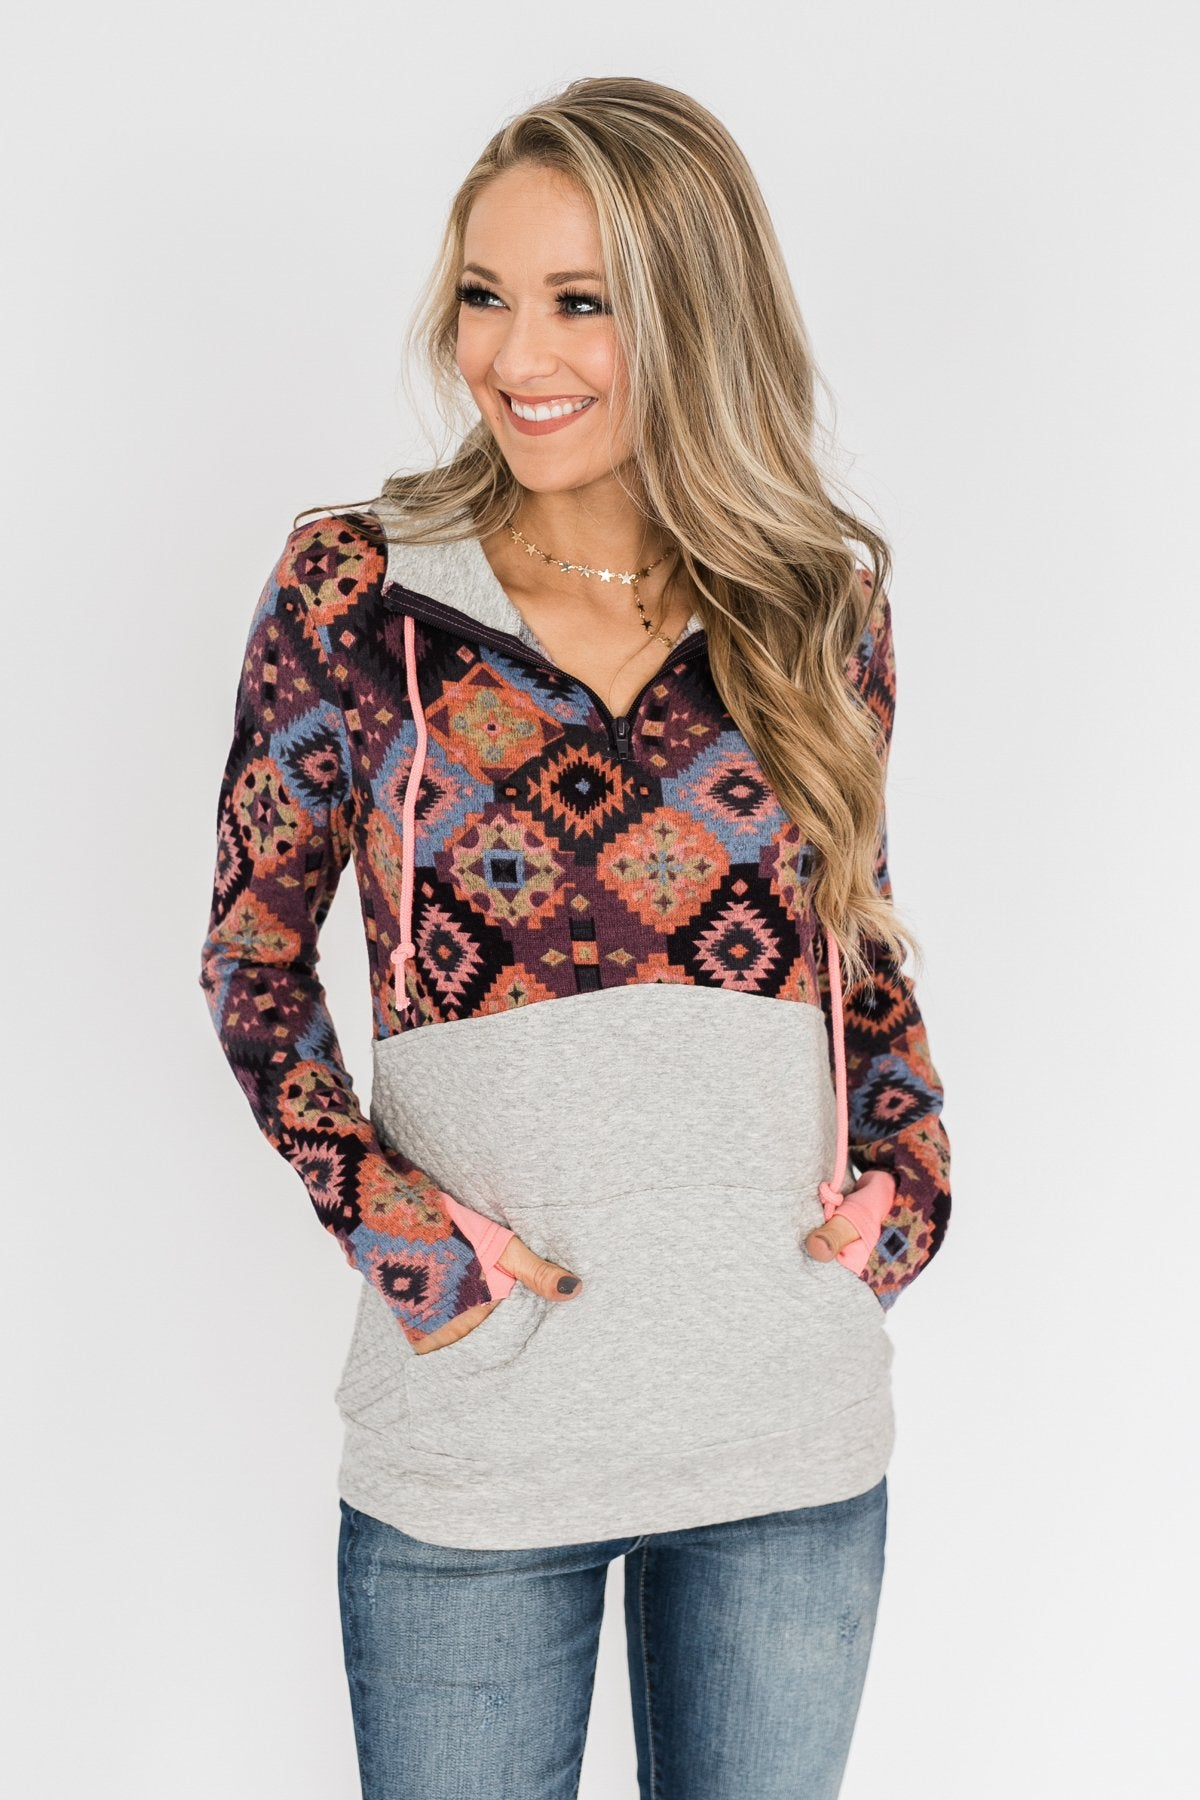 Aztec Quilted Drawstring Hoodie- Grey, Pink, & Purple Tones